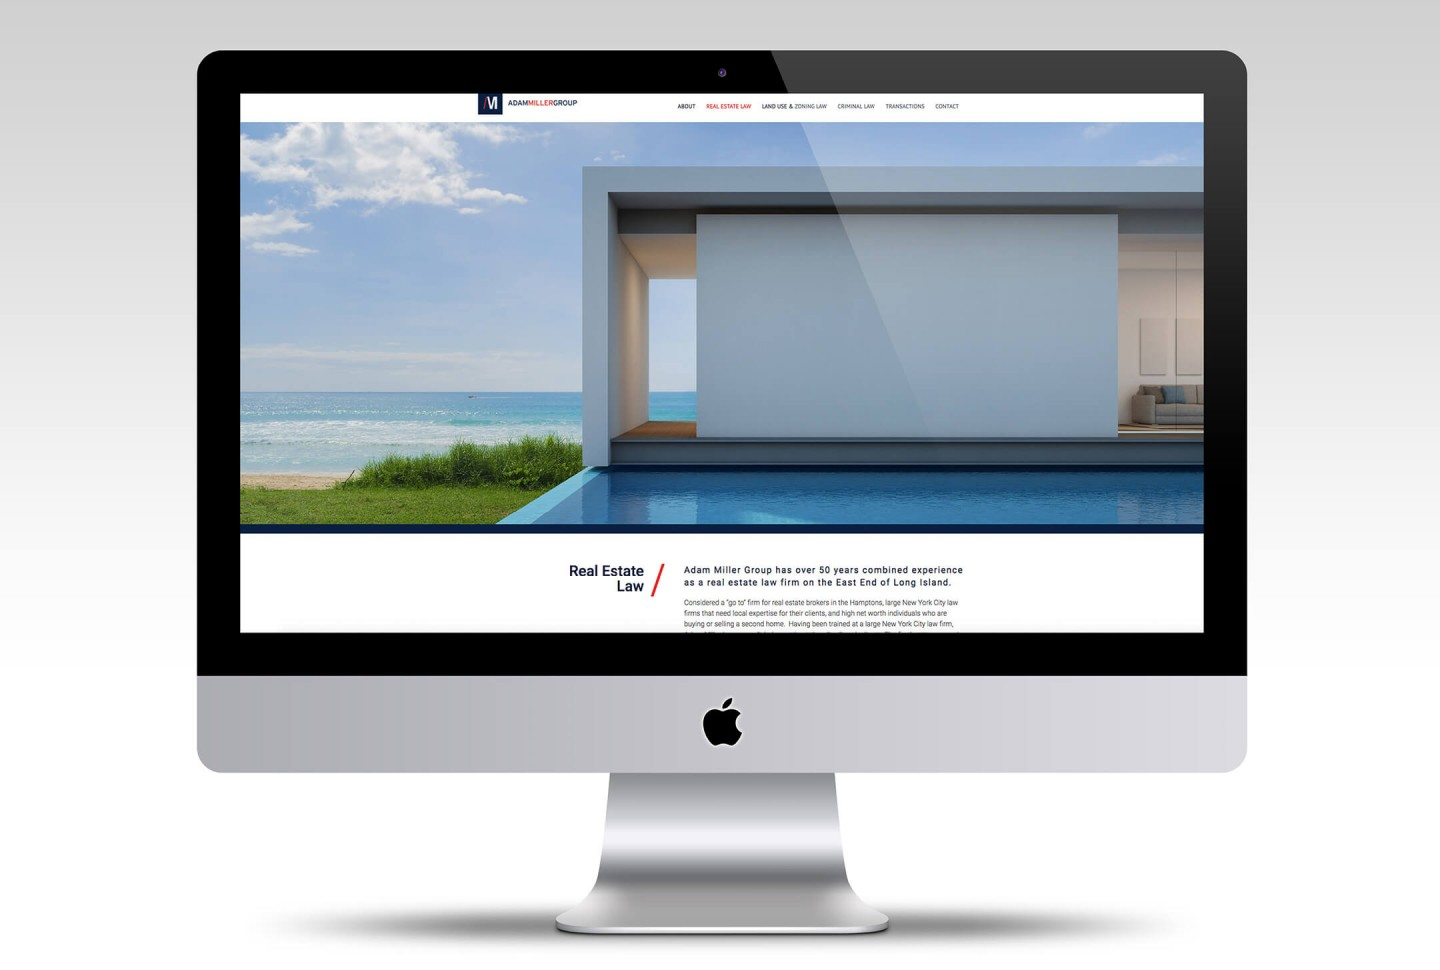 Adam Miller Group website